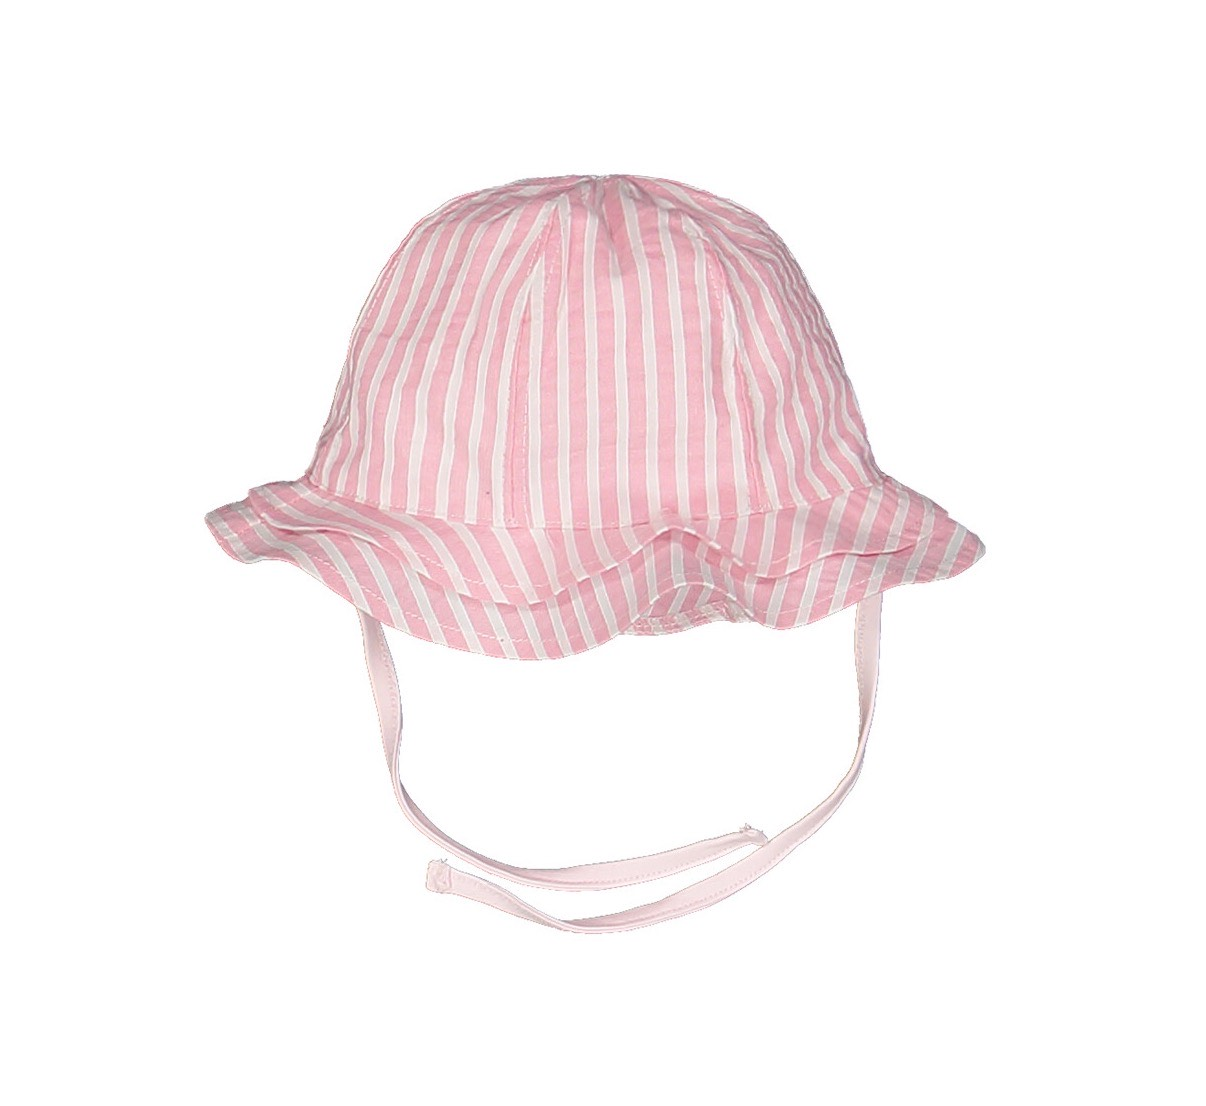 CAPPELLO ROSA MELBY A RIGHE 2